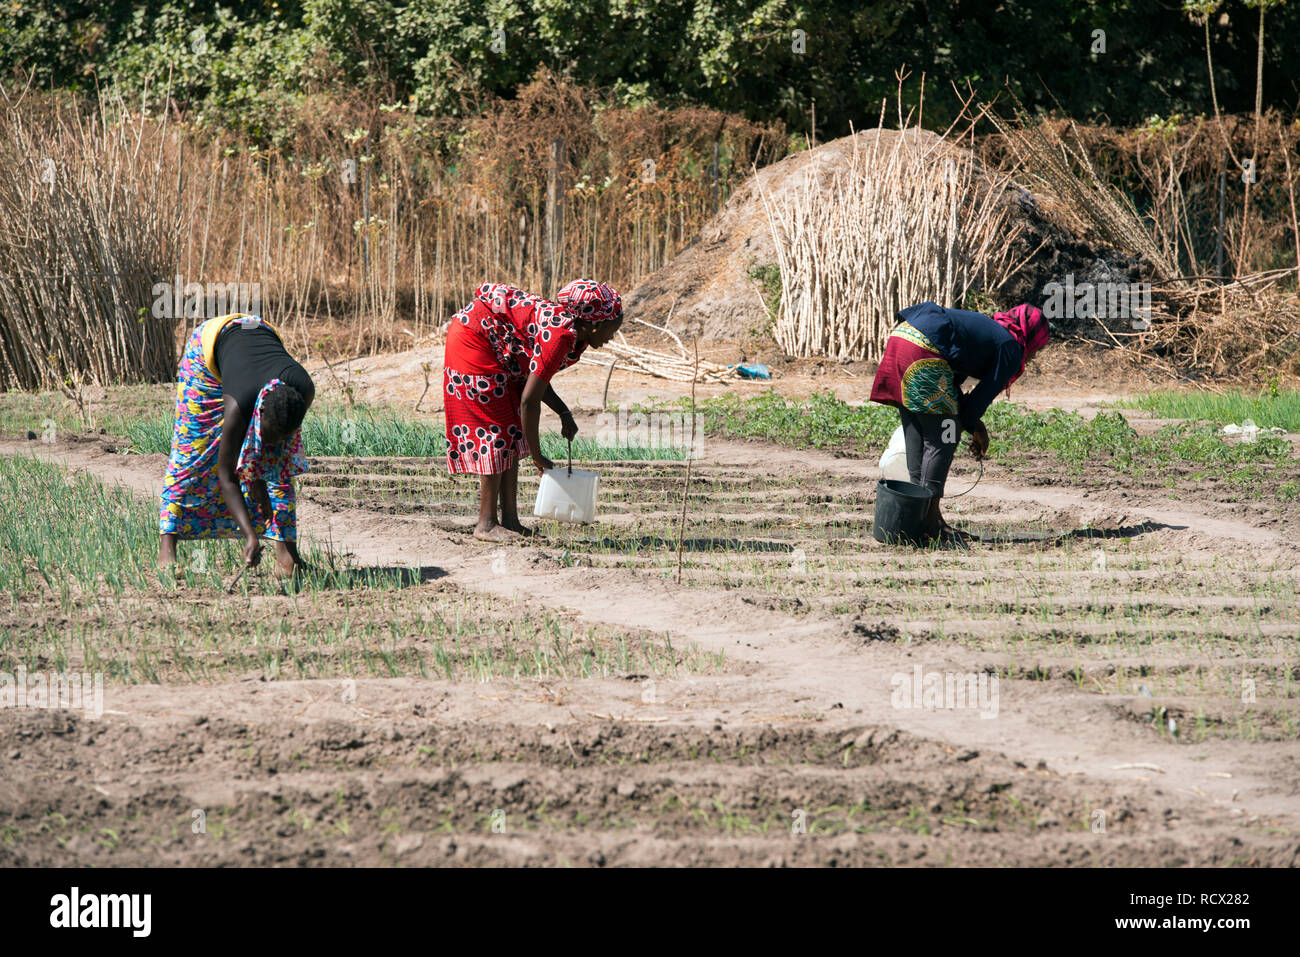 Indigenous Jola women tend their garden in the village of Berending, The Gambia, West Africa. - Stock Image